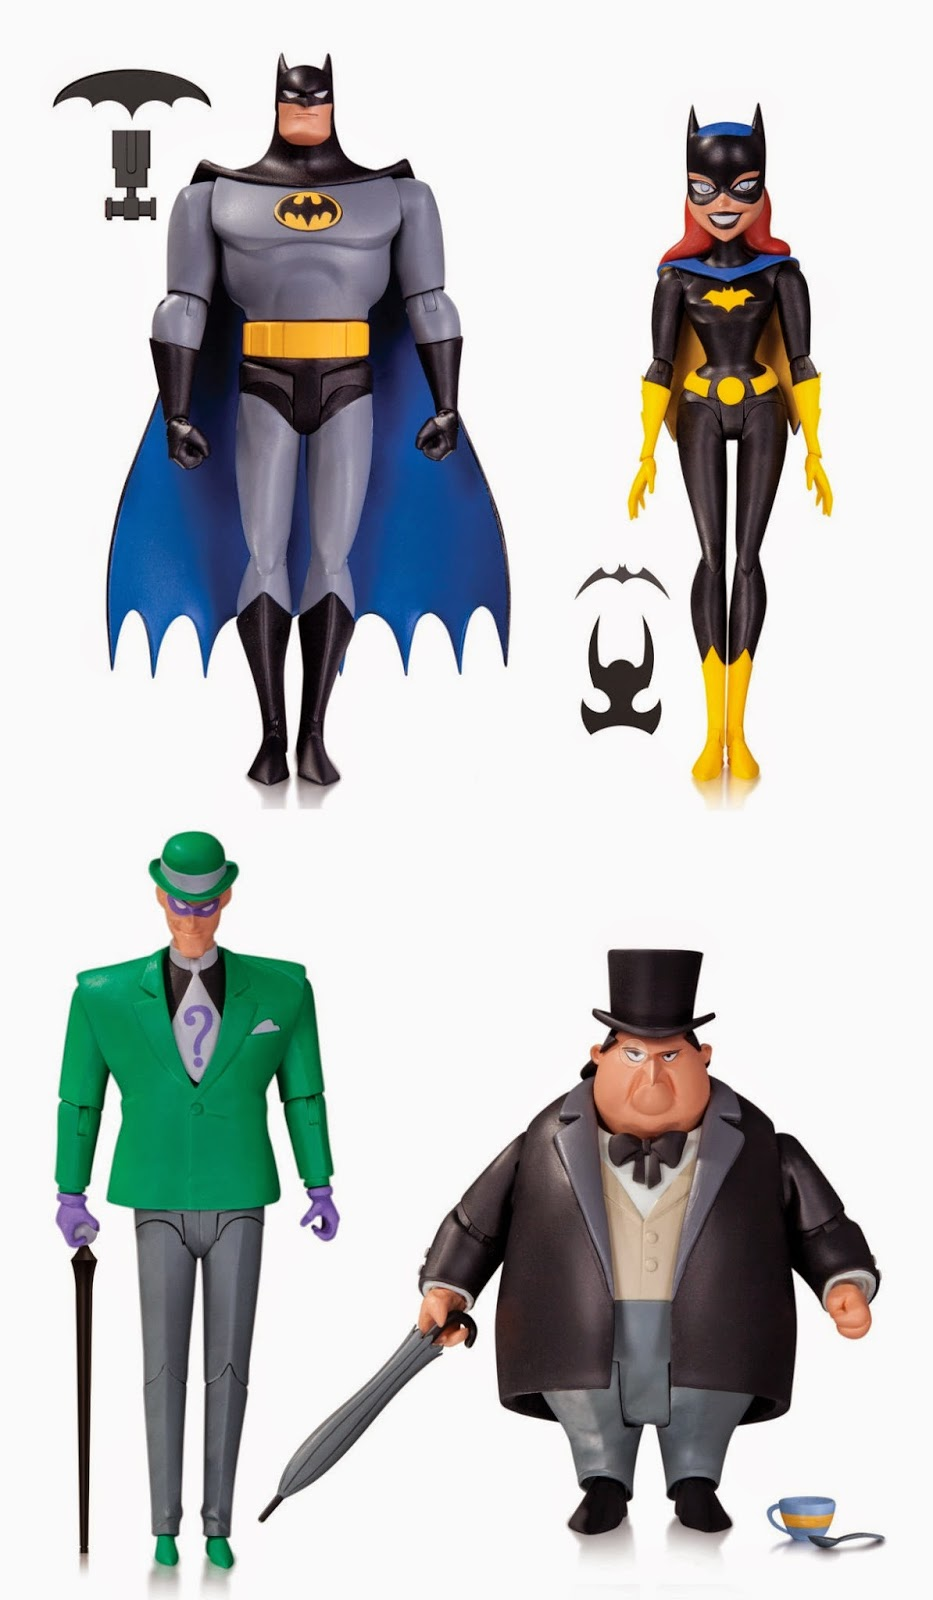 "Batman The Animated Series Wave 4 6"" Action Figure by DC Collectibles - Gray and Black Suit Batman, Batgirl, The Riddler & The Penguin"